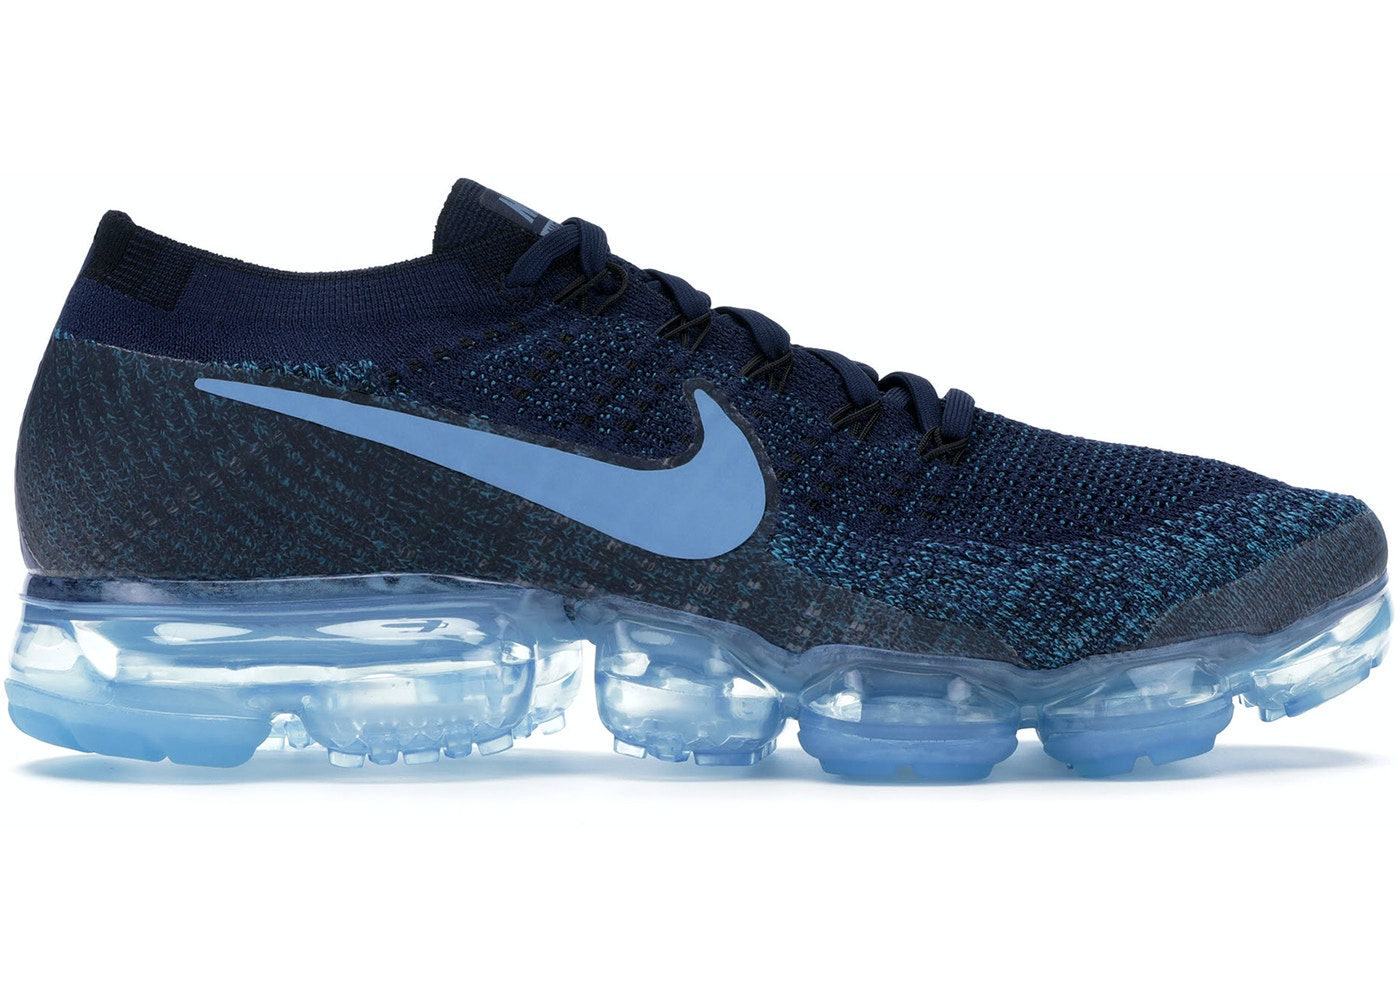 buy online c5c48 82181 Nike Air Max VaporMax Shoes - New Highest Bids